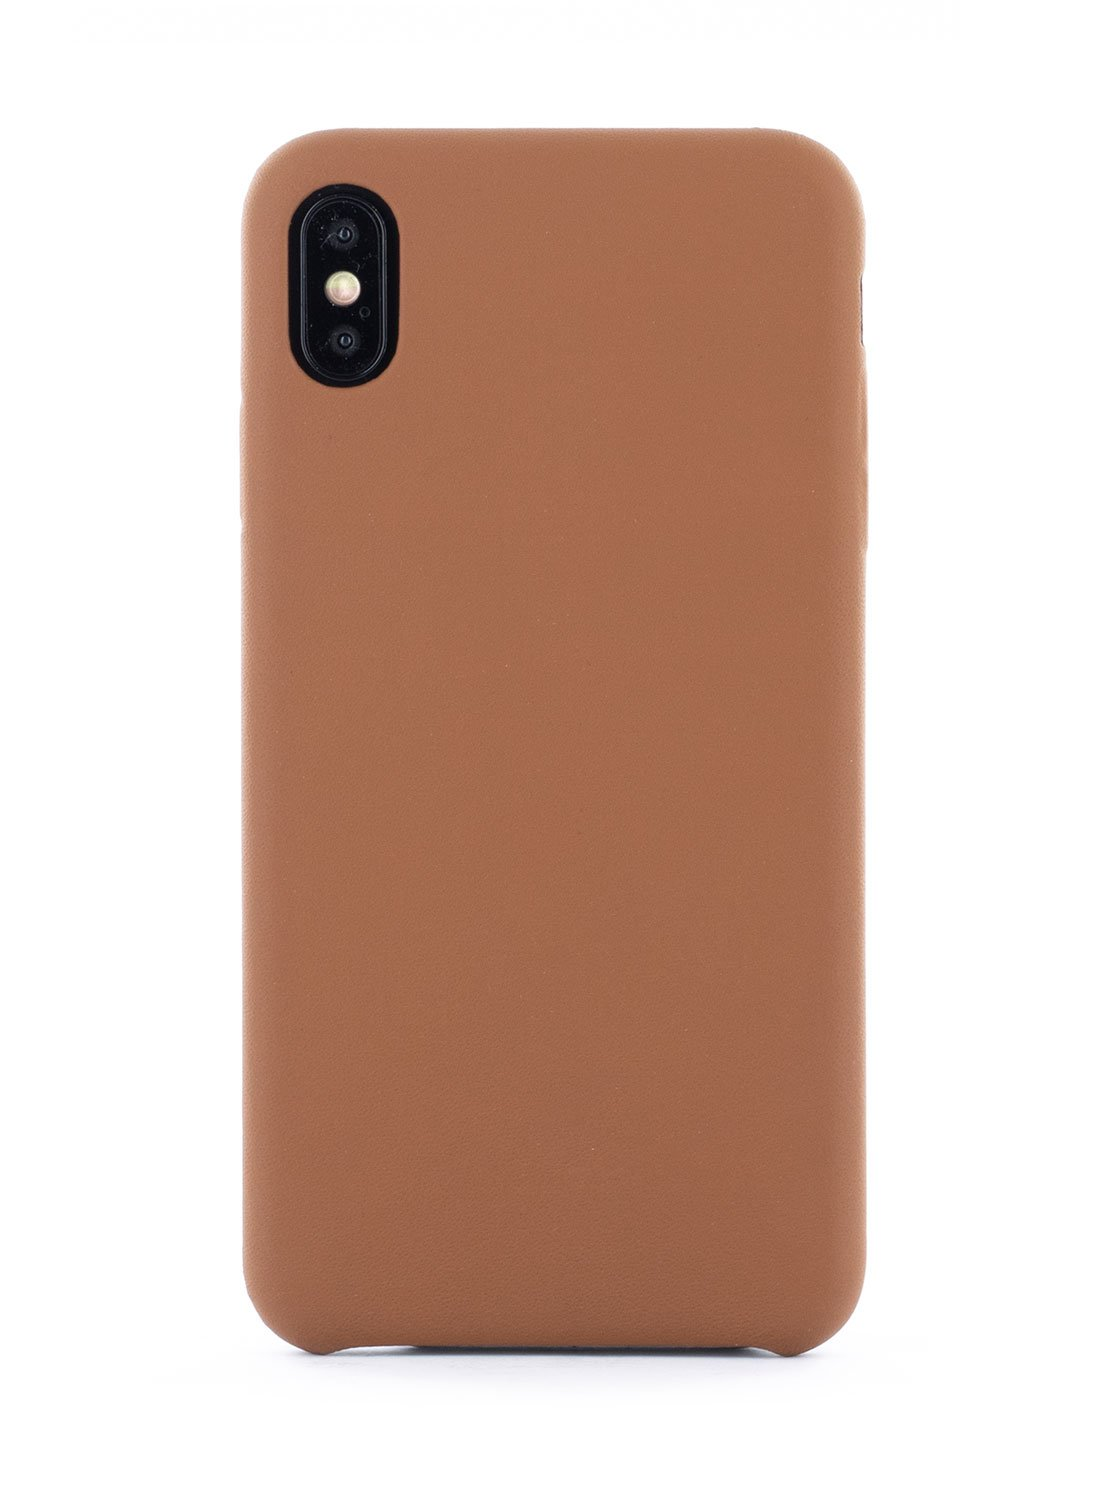 AEON Luxury Leather Wrapped Back Shell for iPhone XS Max - Saddle (Brown)